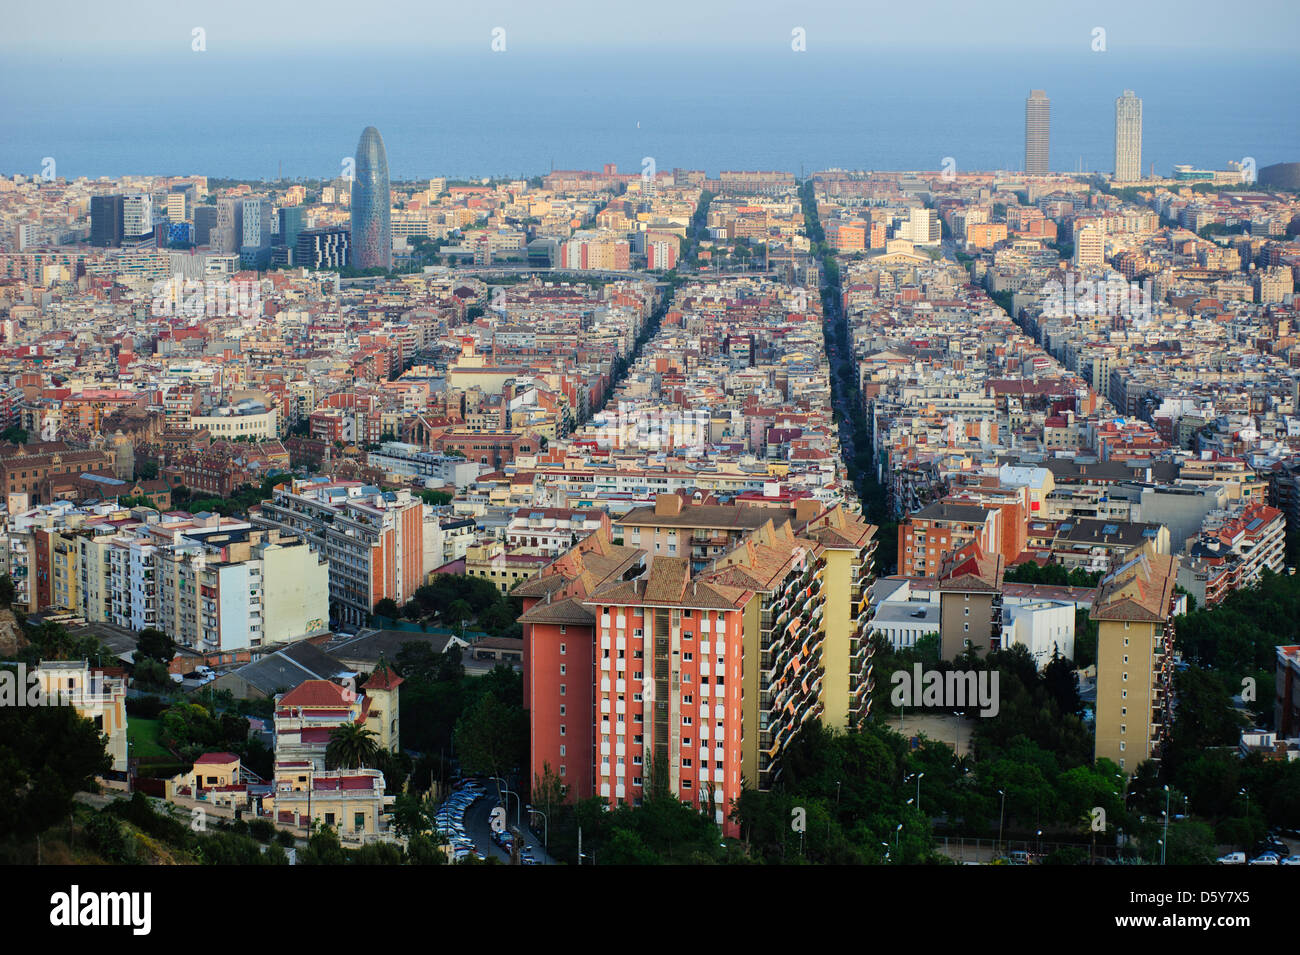 A general view of Barcelona's skyline, Spain. - Stock Image